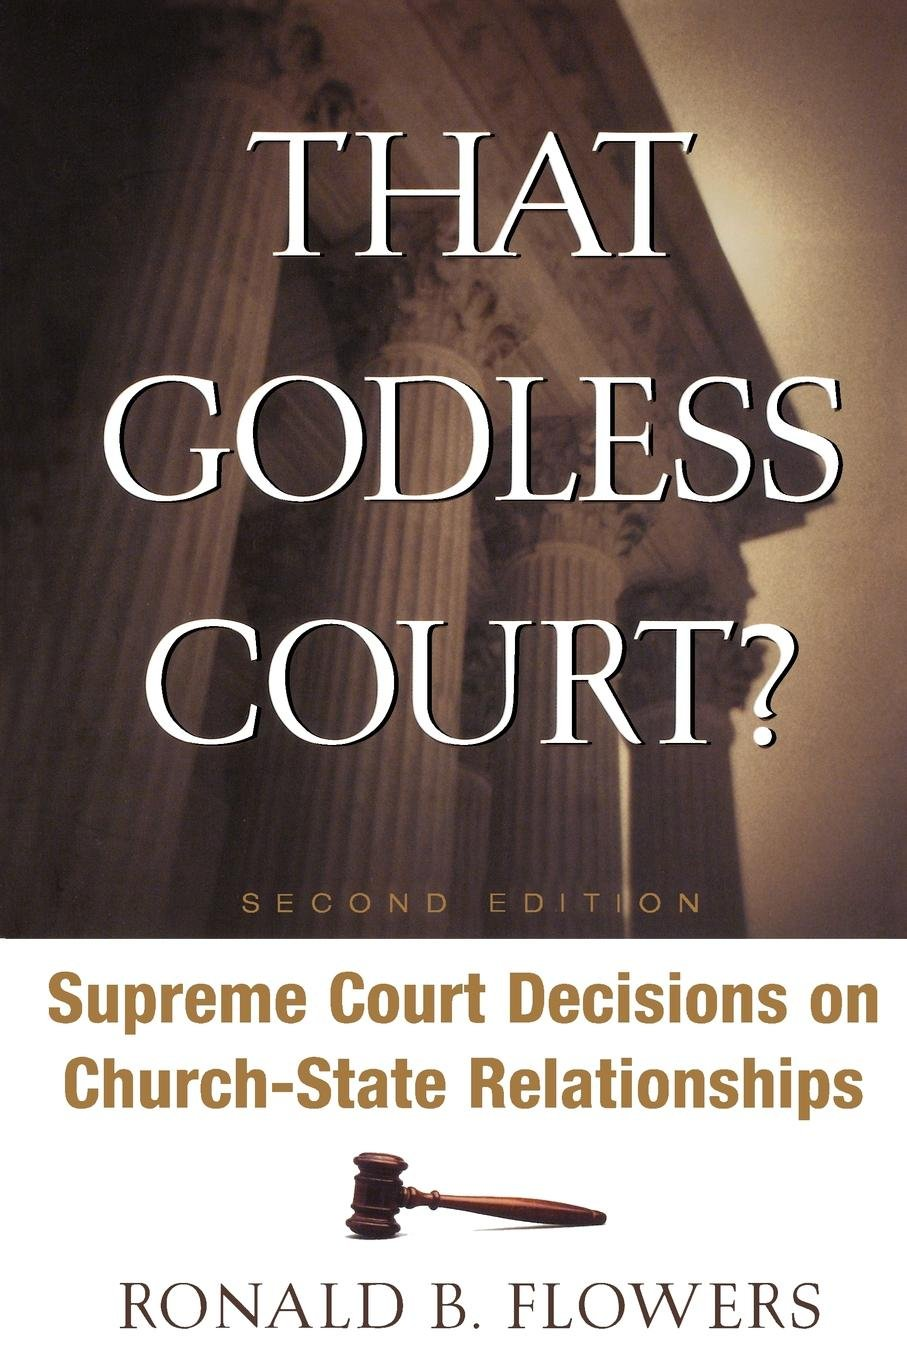 That Godless Court?, Second Edition: Supreme Court Decisions On Church-State Relationships Text fb2 ebook